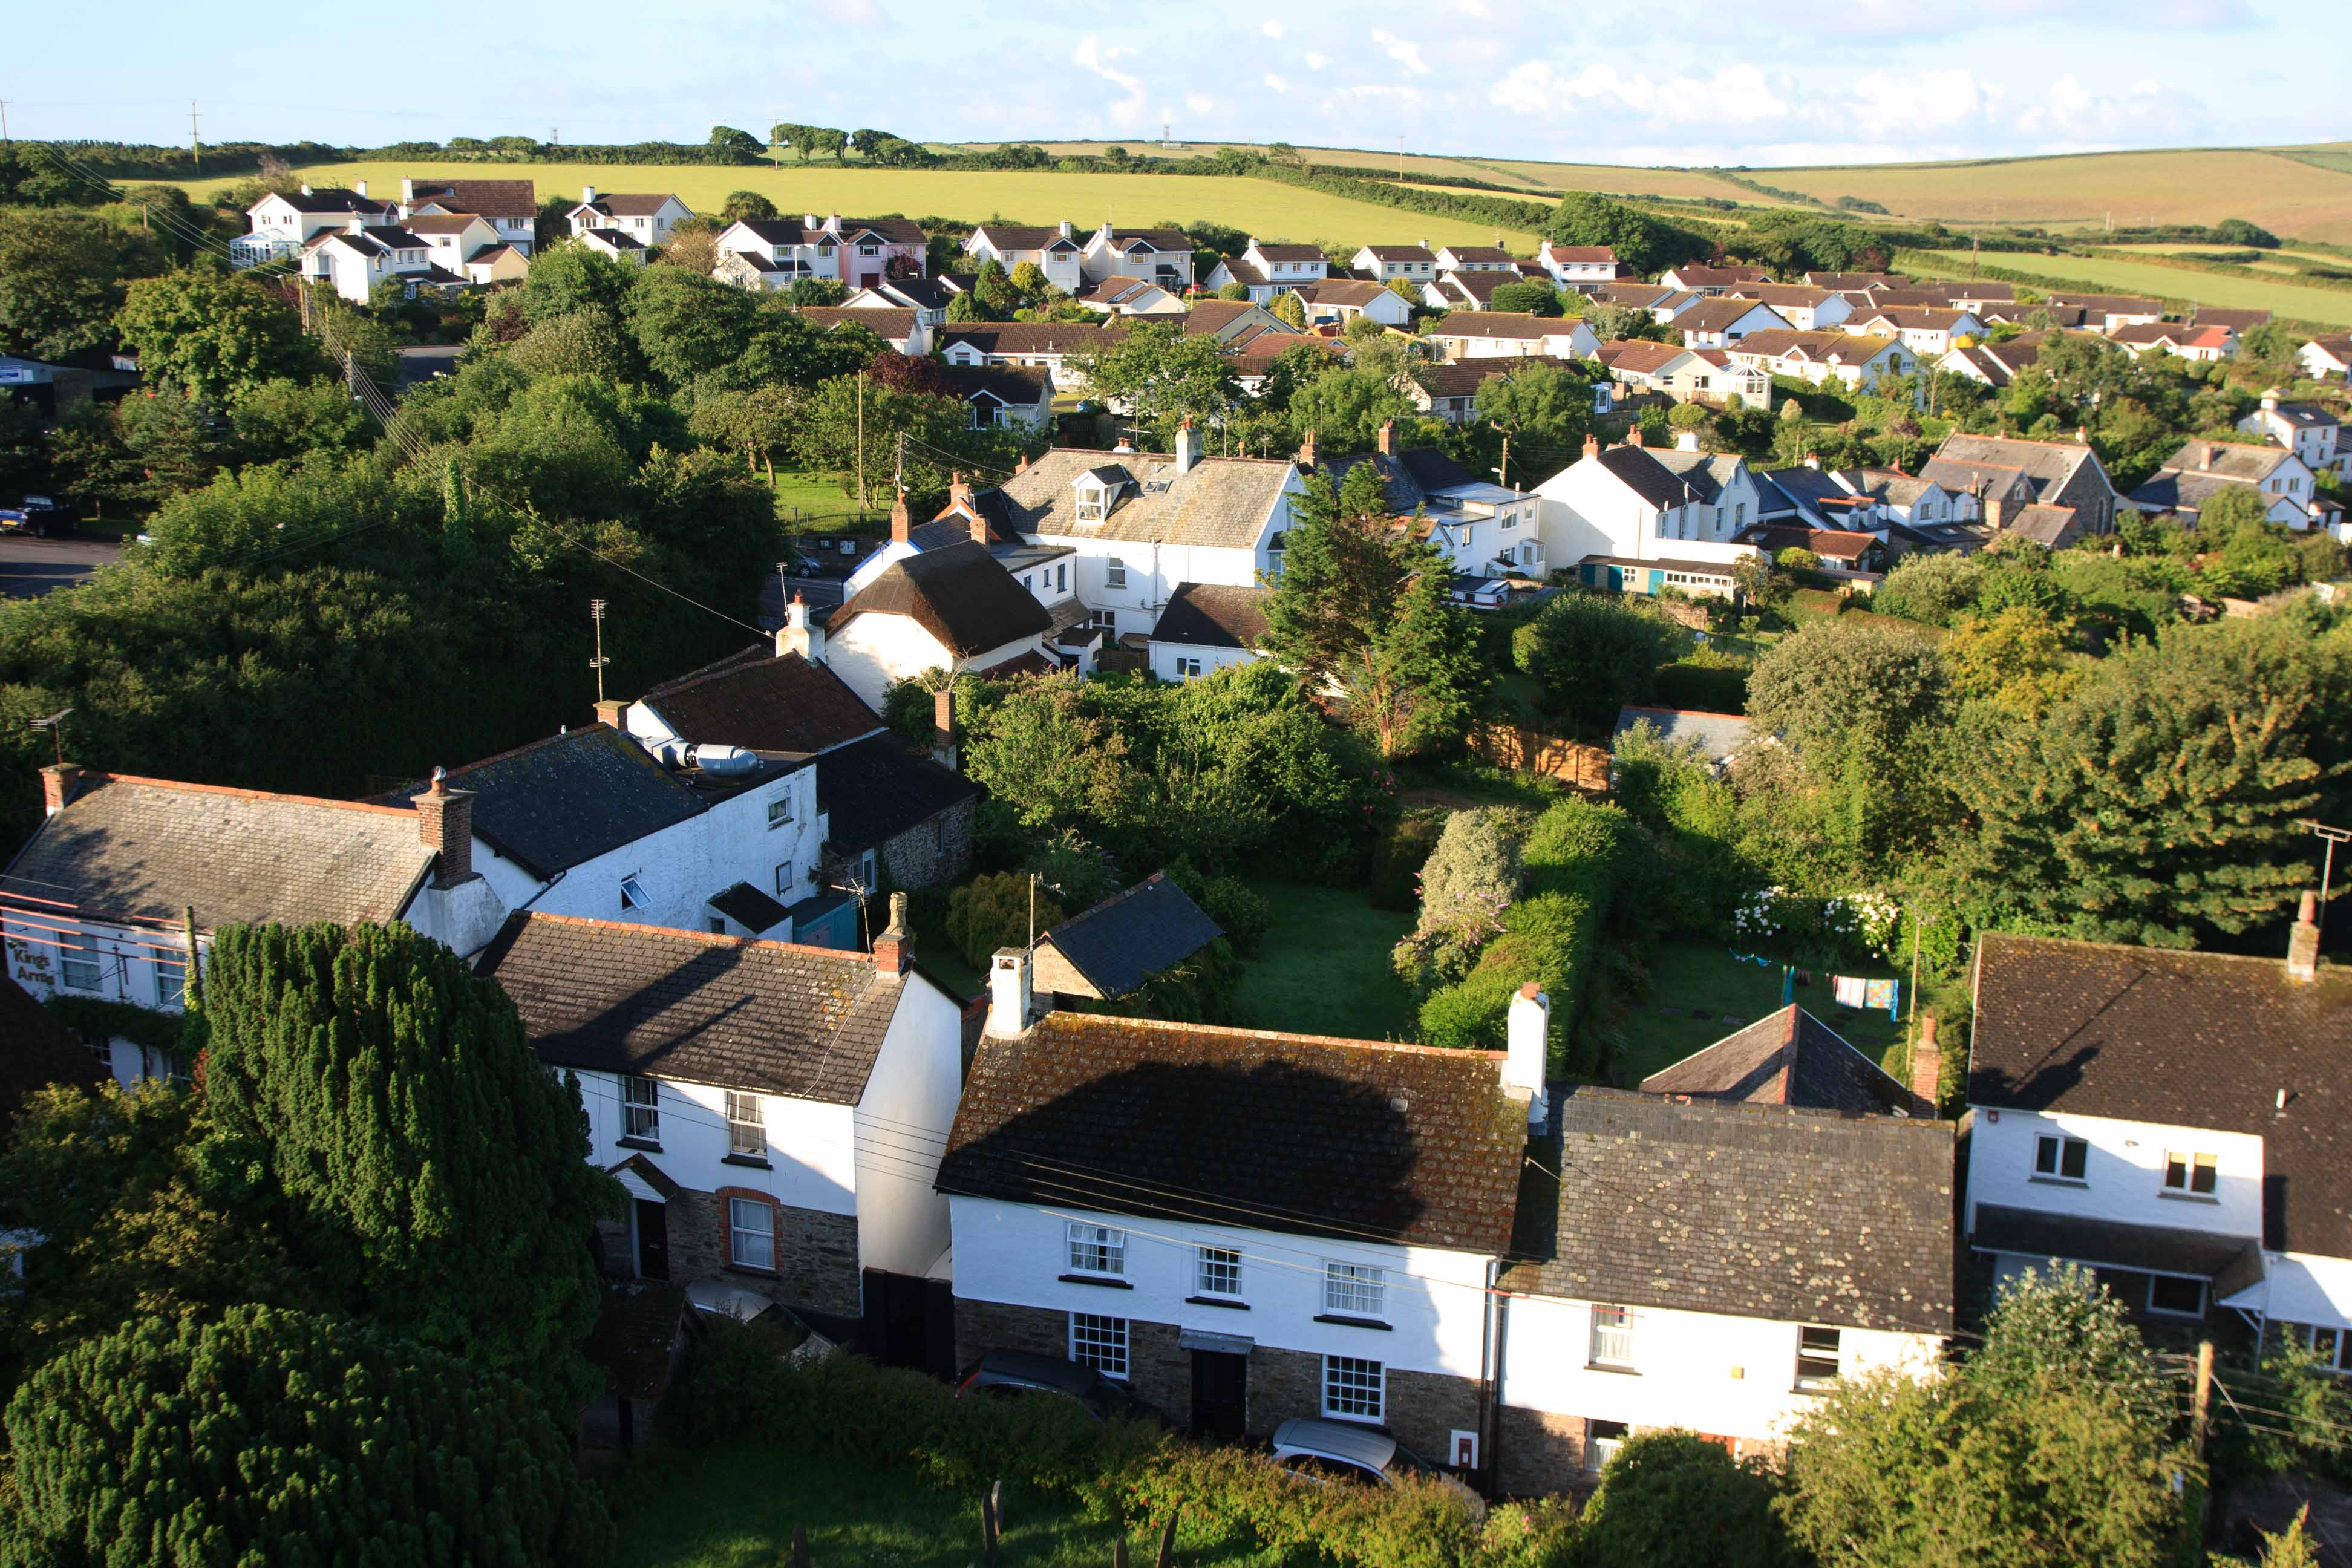 Georgeham from the top of the church tower